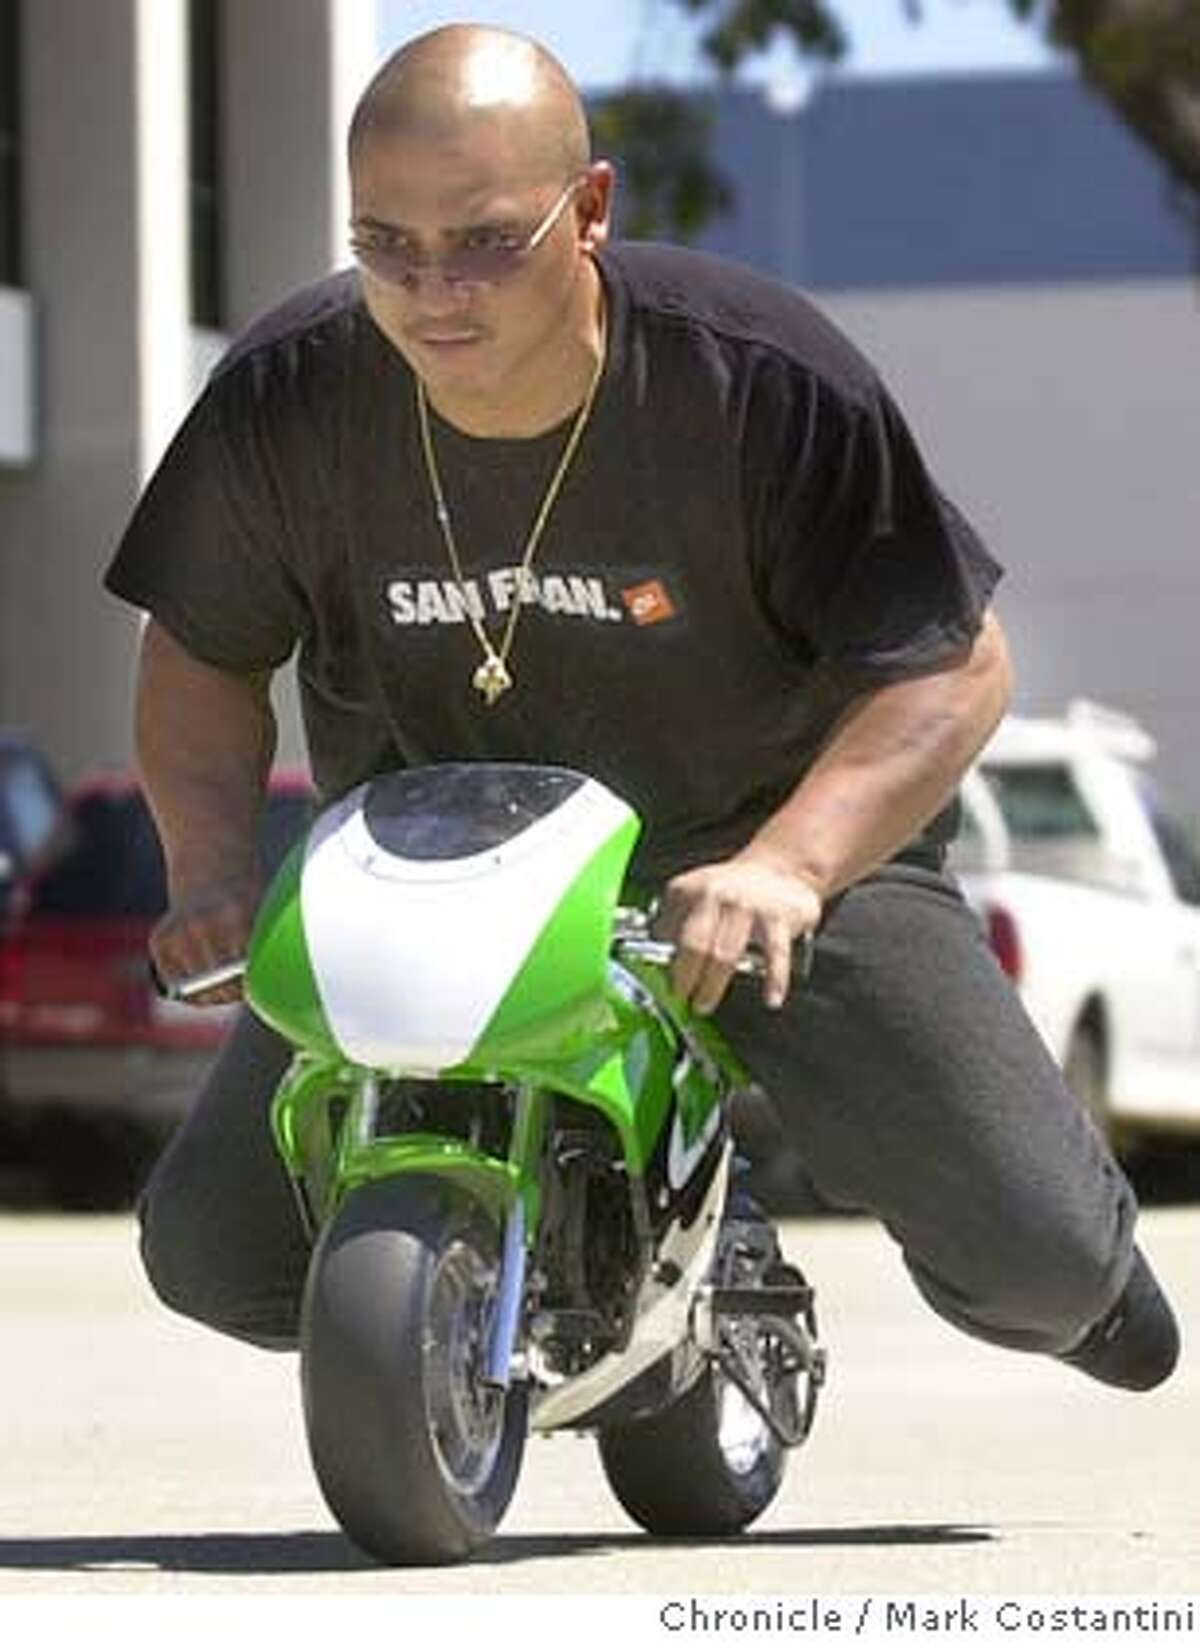 BIKES16_057.JPG Photo taken on 6/16/04 in SOUTH SAN FRANCISCO. Ervin Nicolas rides a pocket bike, a new type Are of minature motorcycle that is becoming popular with Bay Area youths. Photo: Mark Costantini/SF Chronicle